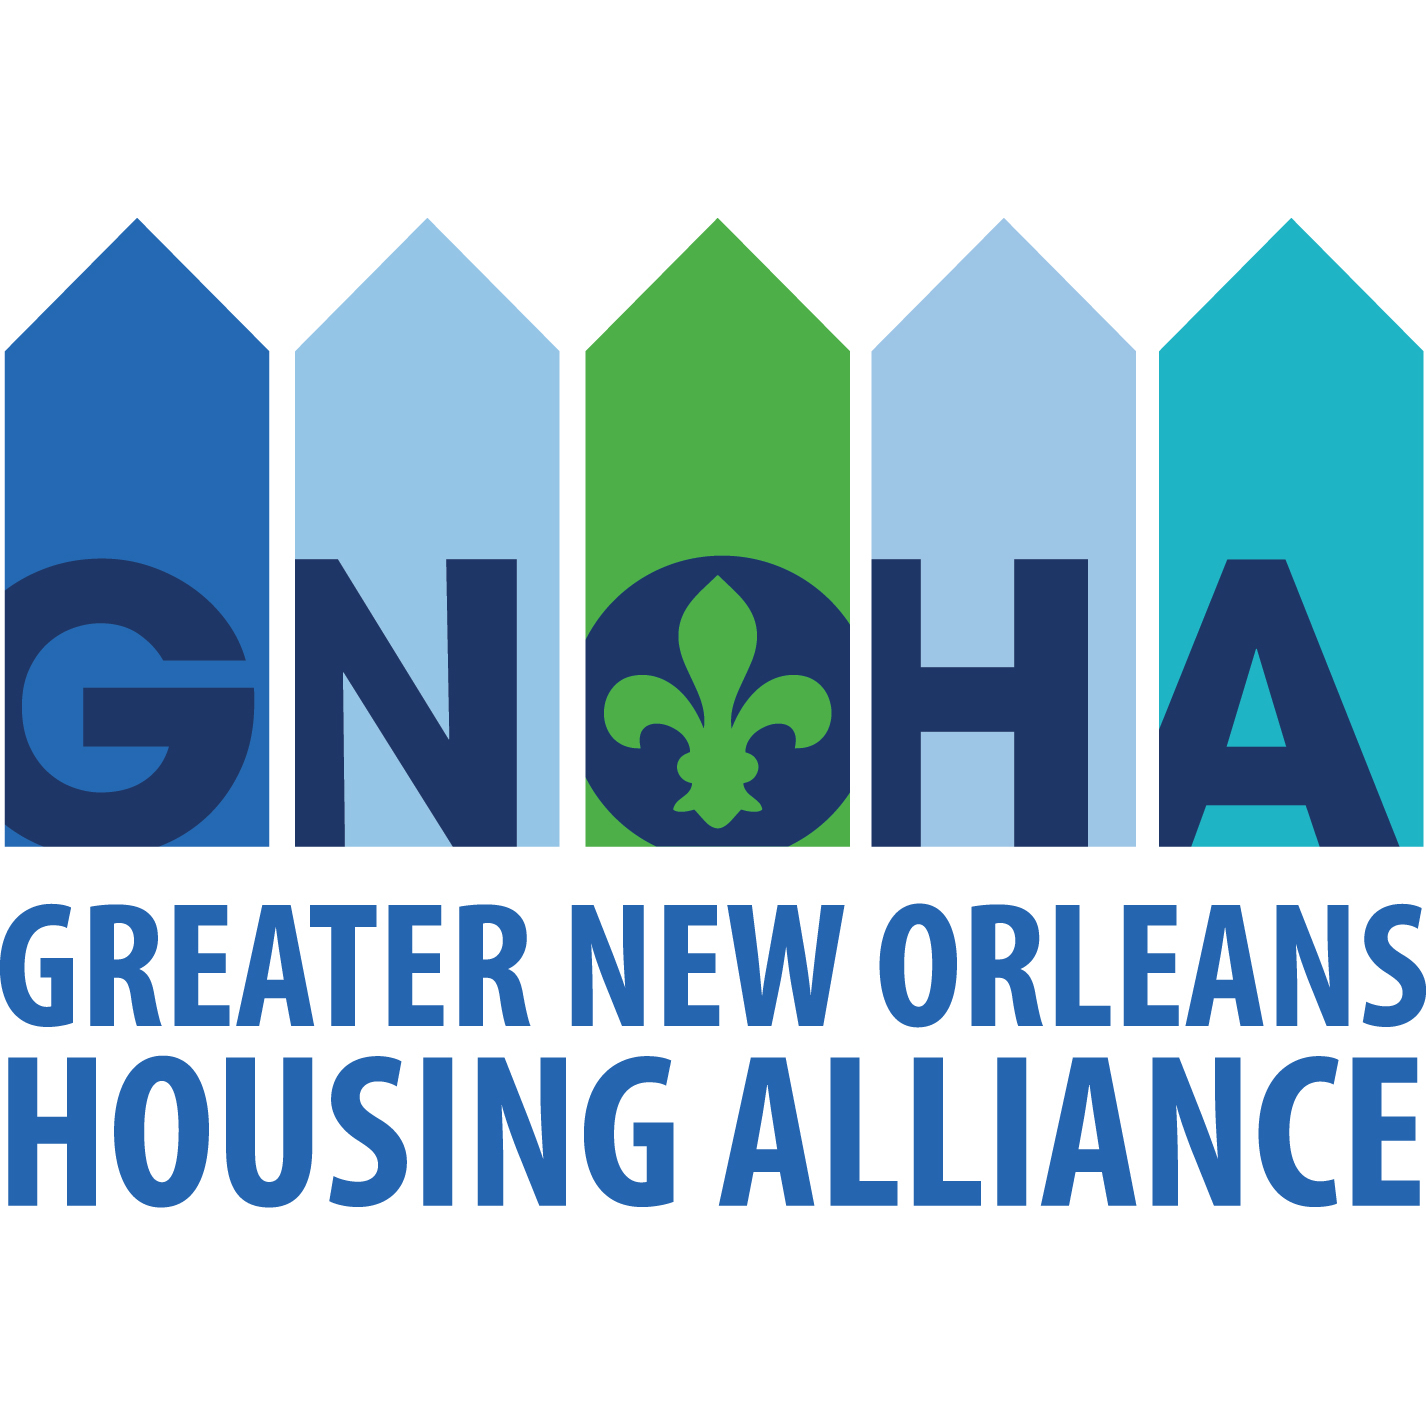 Greater New Orleans Housing Alliance image 2